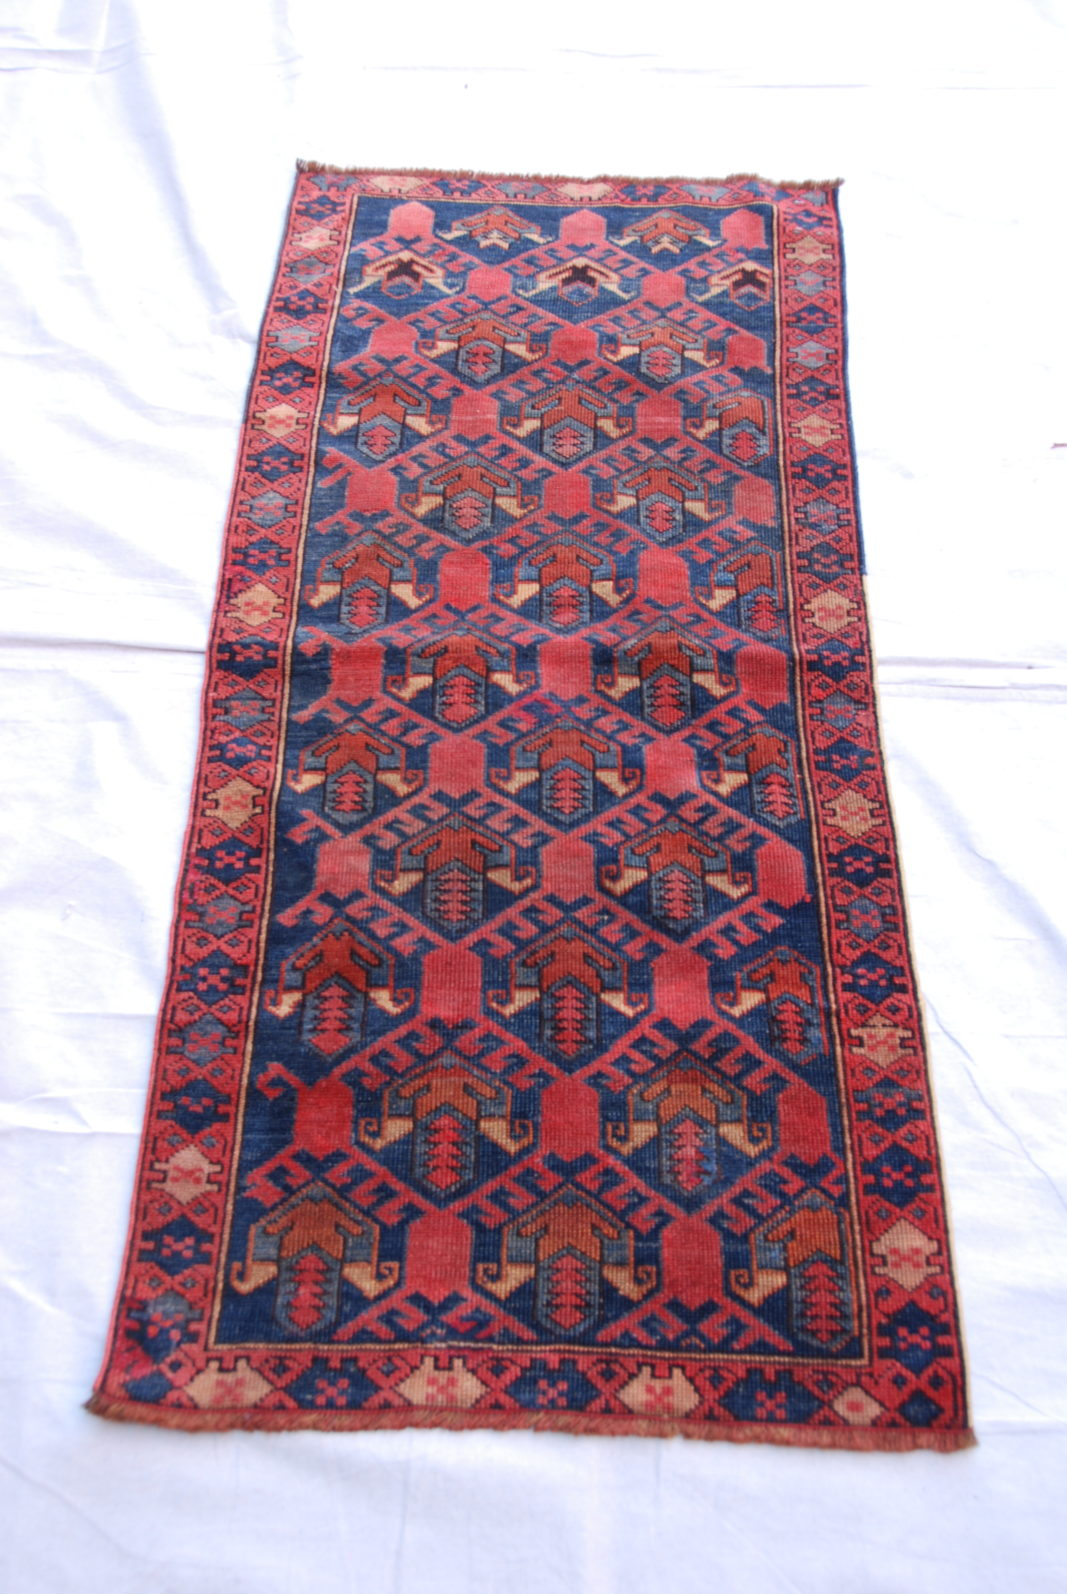 North West Azerbaijan Shirvan, wool on wool runner 100 years old 1.29 x 0.60 $595